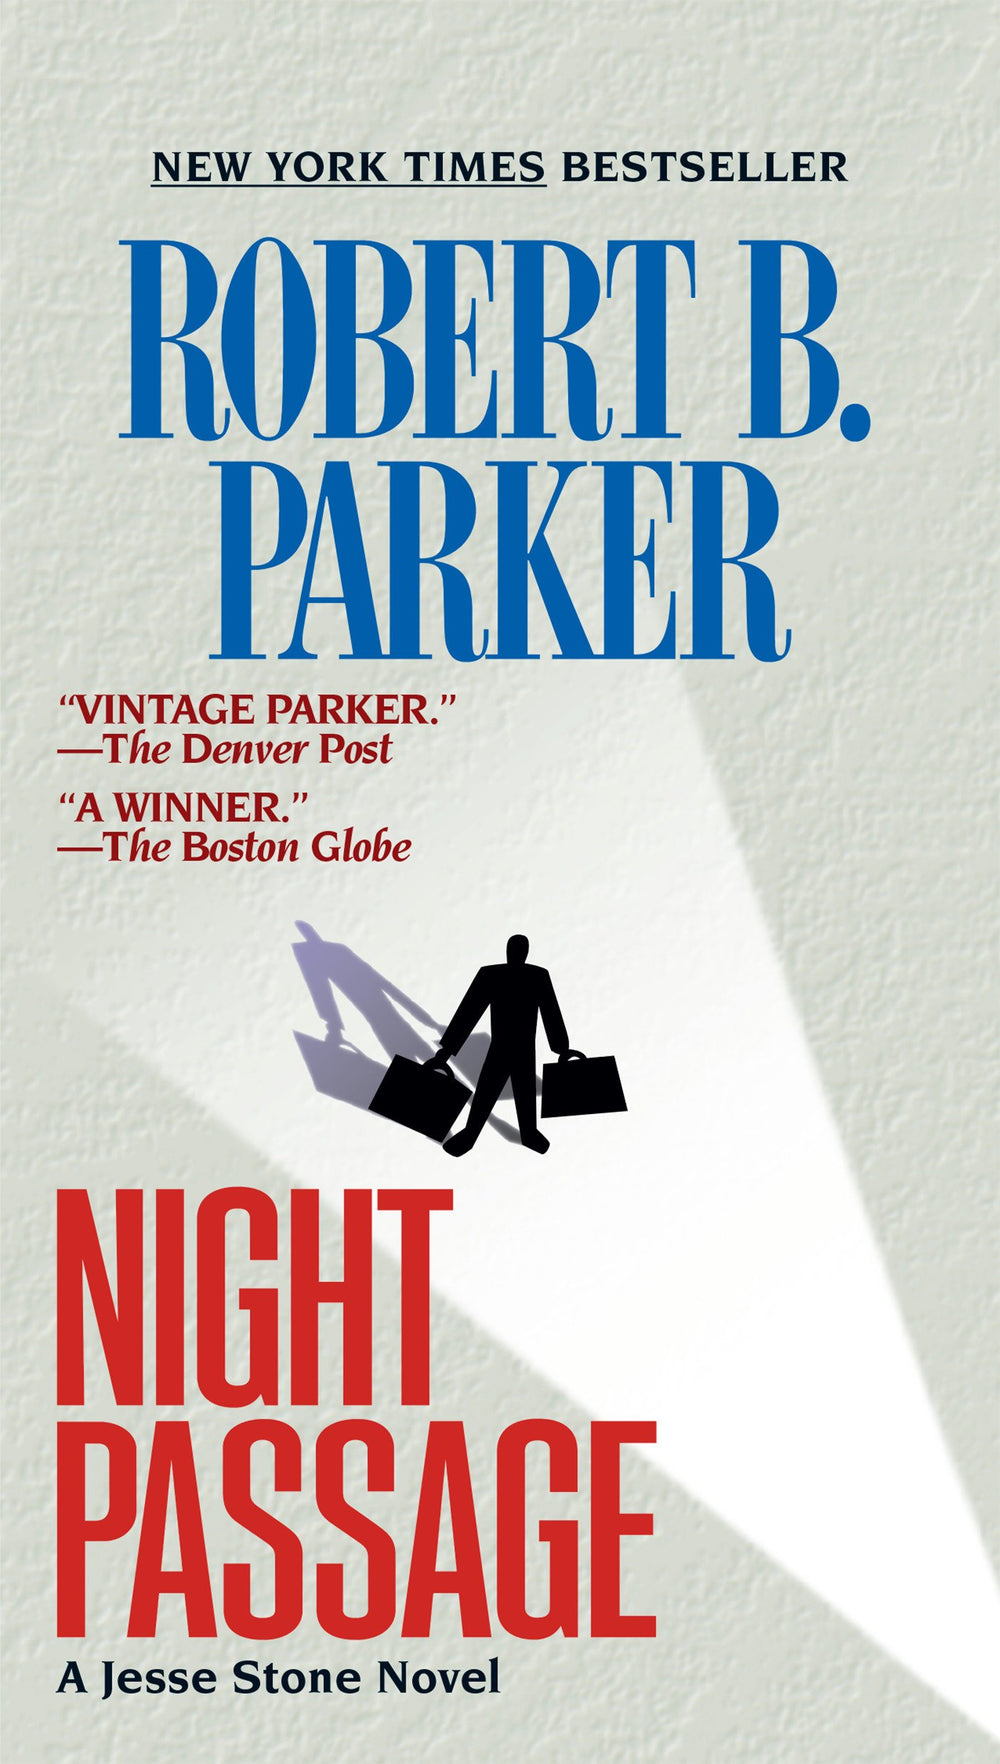 Night Passage (Jesse Stone 1) by Robert B. Parker